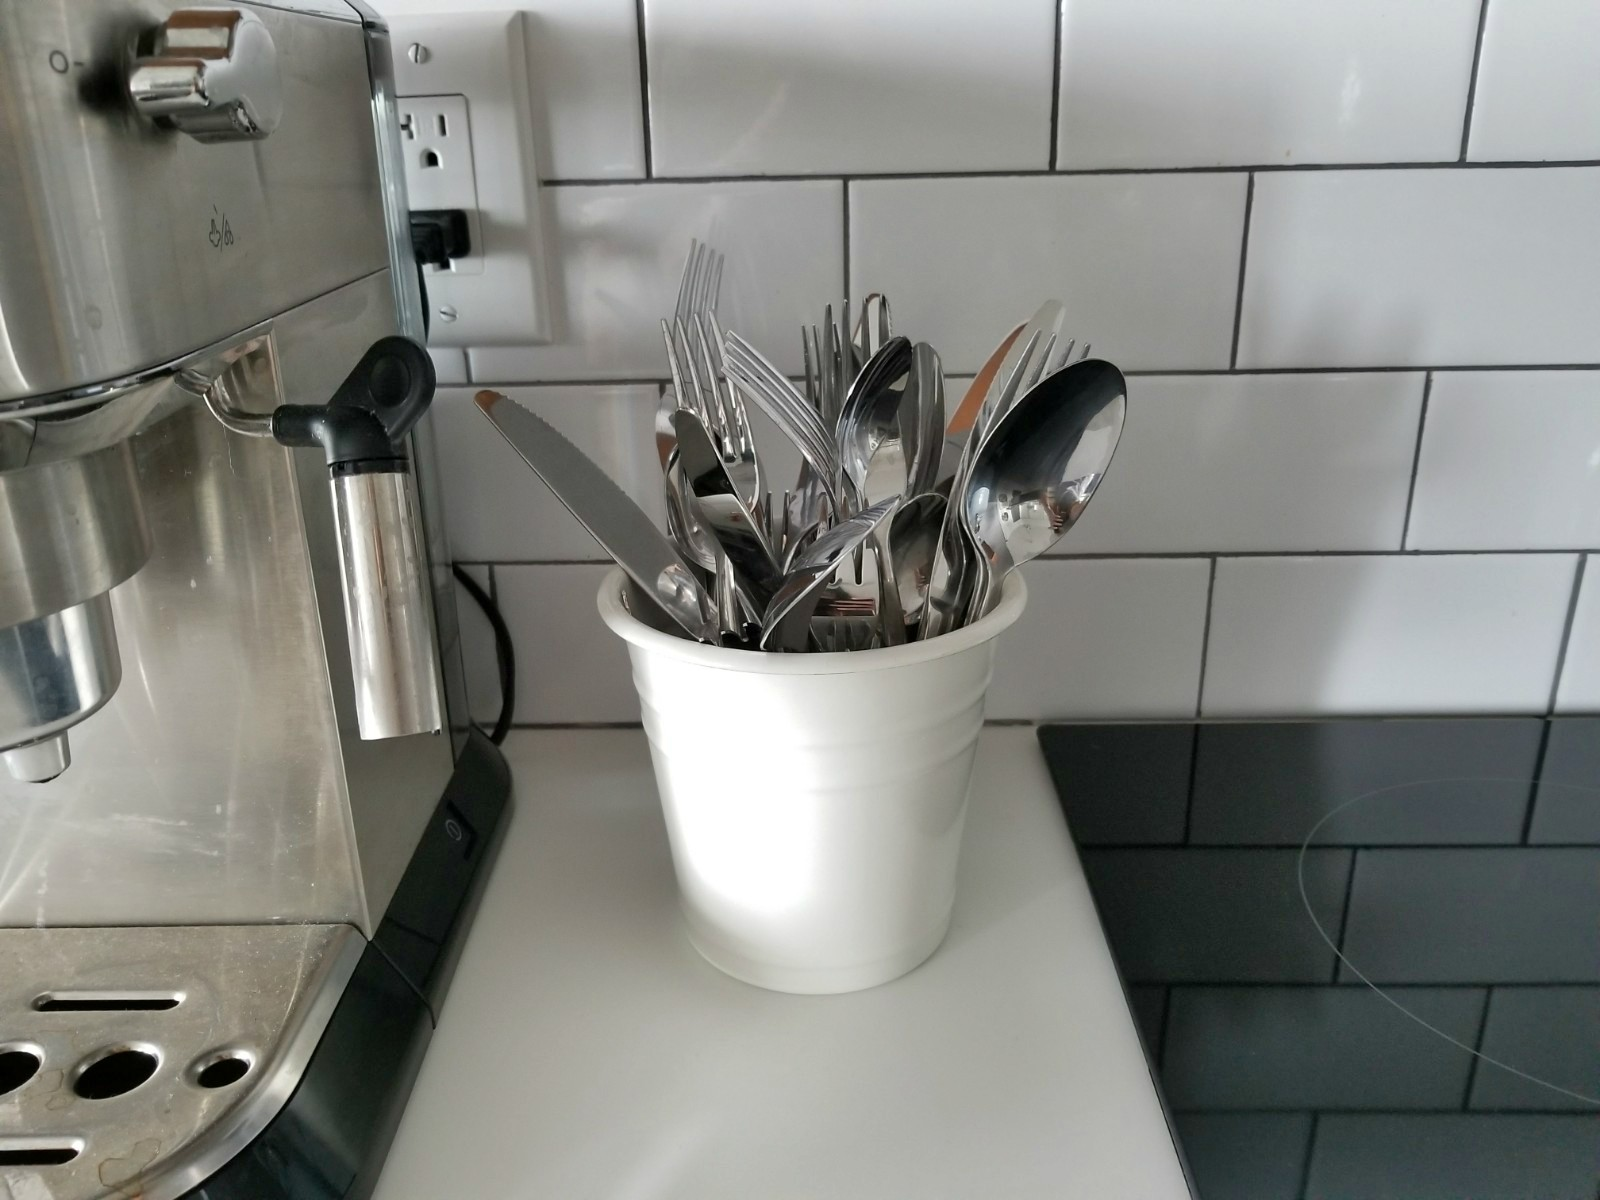 Ikea utensil holder